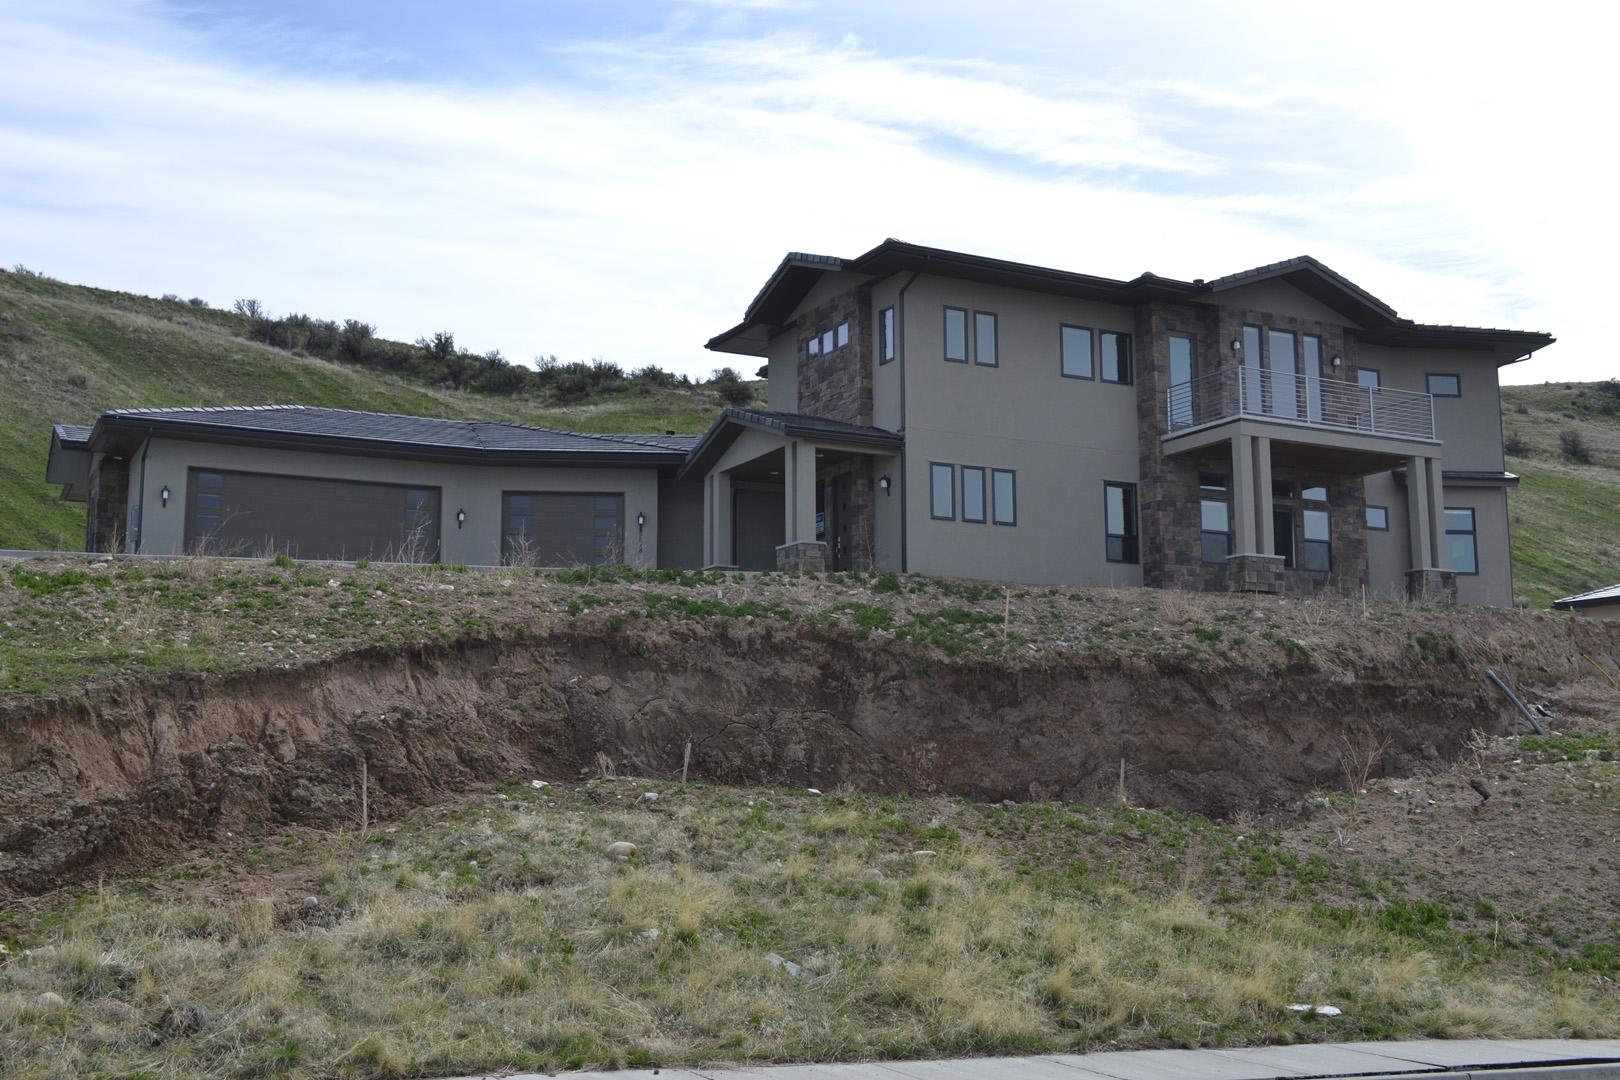 The sliding homes in the Boise Foothills continue to crumble after a historic winter and wet early spring. The homes sit vacant on the Alto Via Court and have now been targeted with vandalism. Some of the homes are wide open to the elements, which have provided prime nesting for birds. (KBOI Staff Photo)